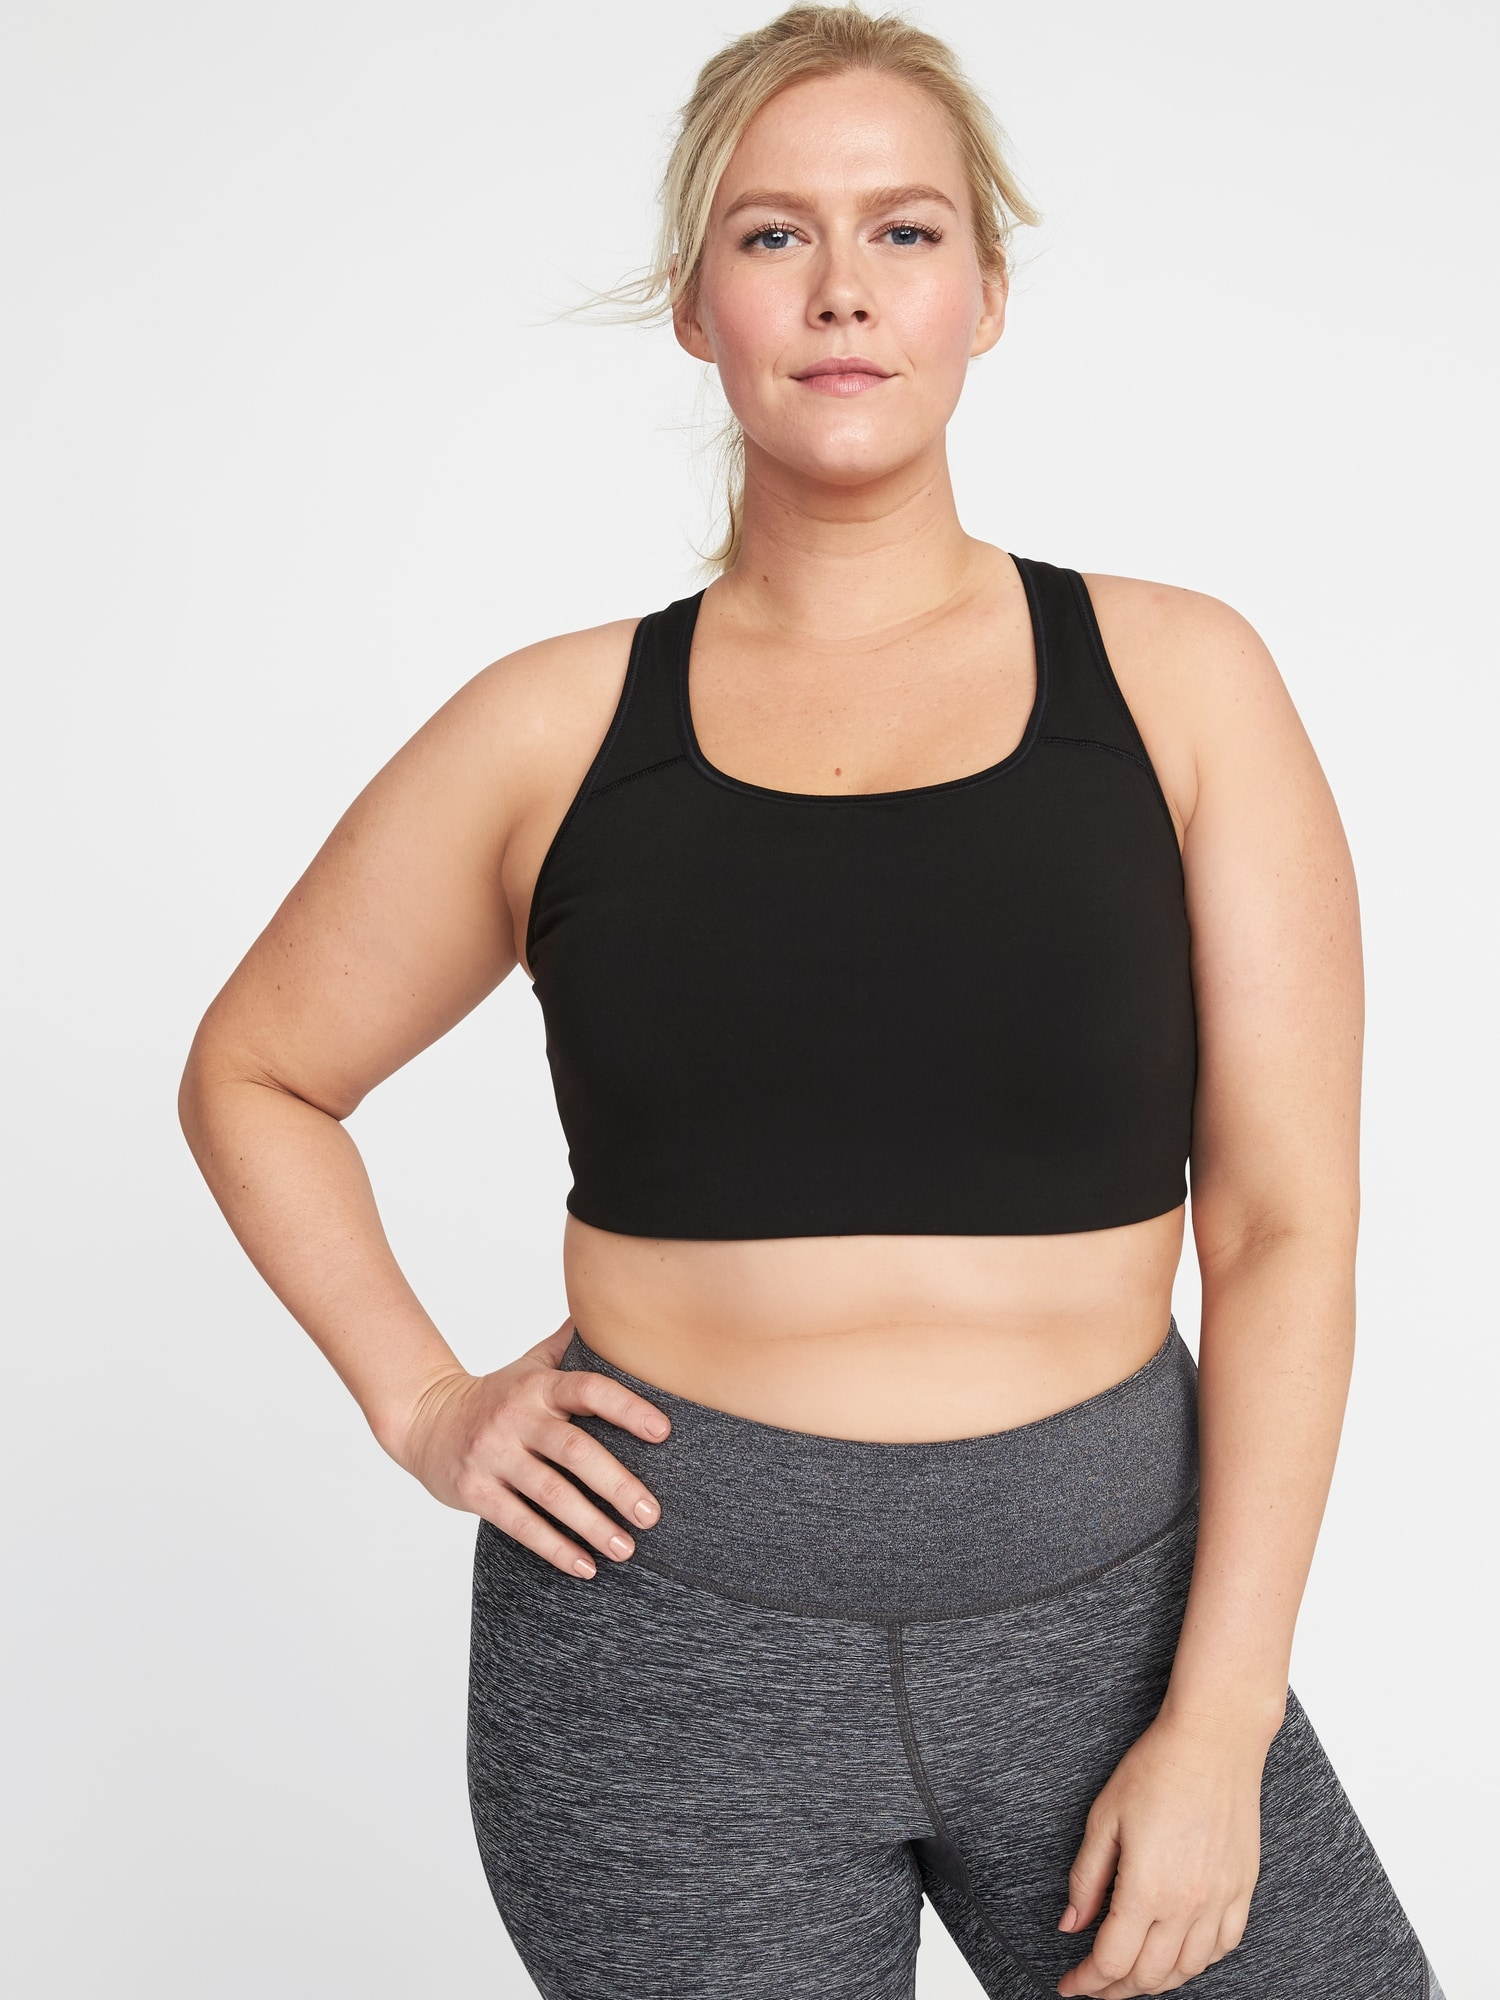 1db97a1b292 Medium Support Plus-Size Racerback Sports Bra by Old Navy - Proud Mary